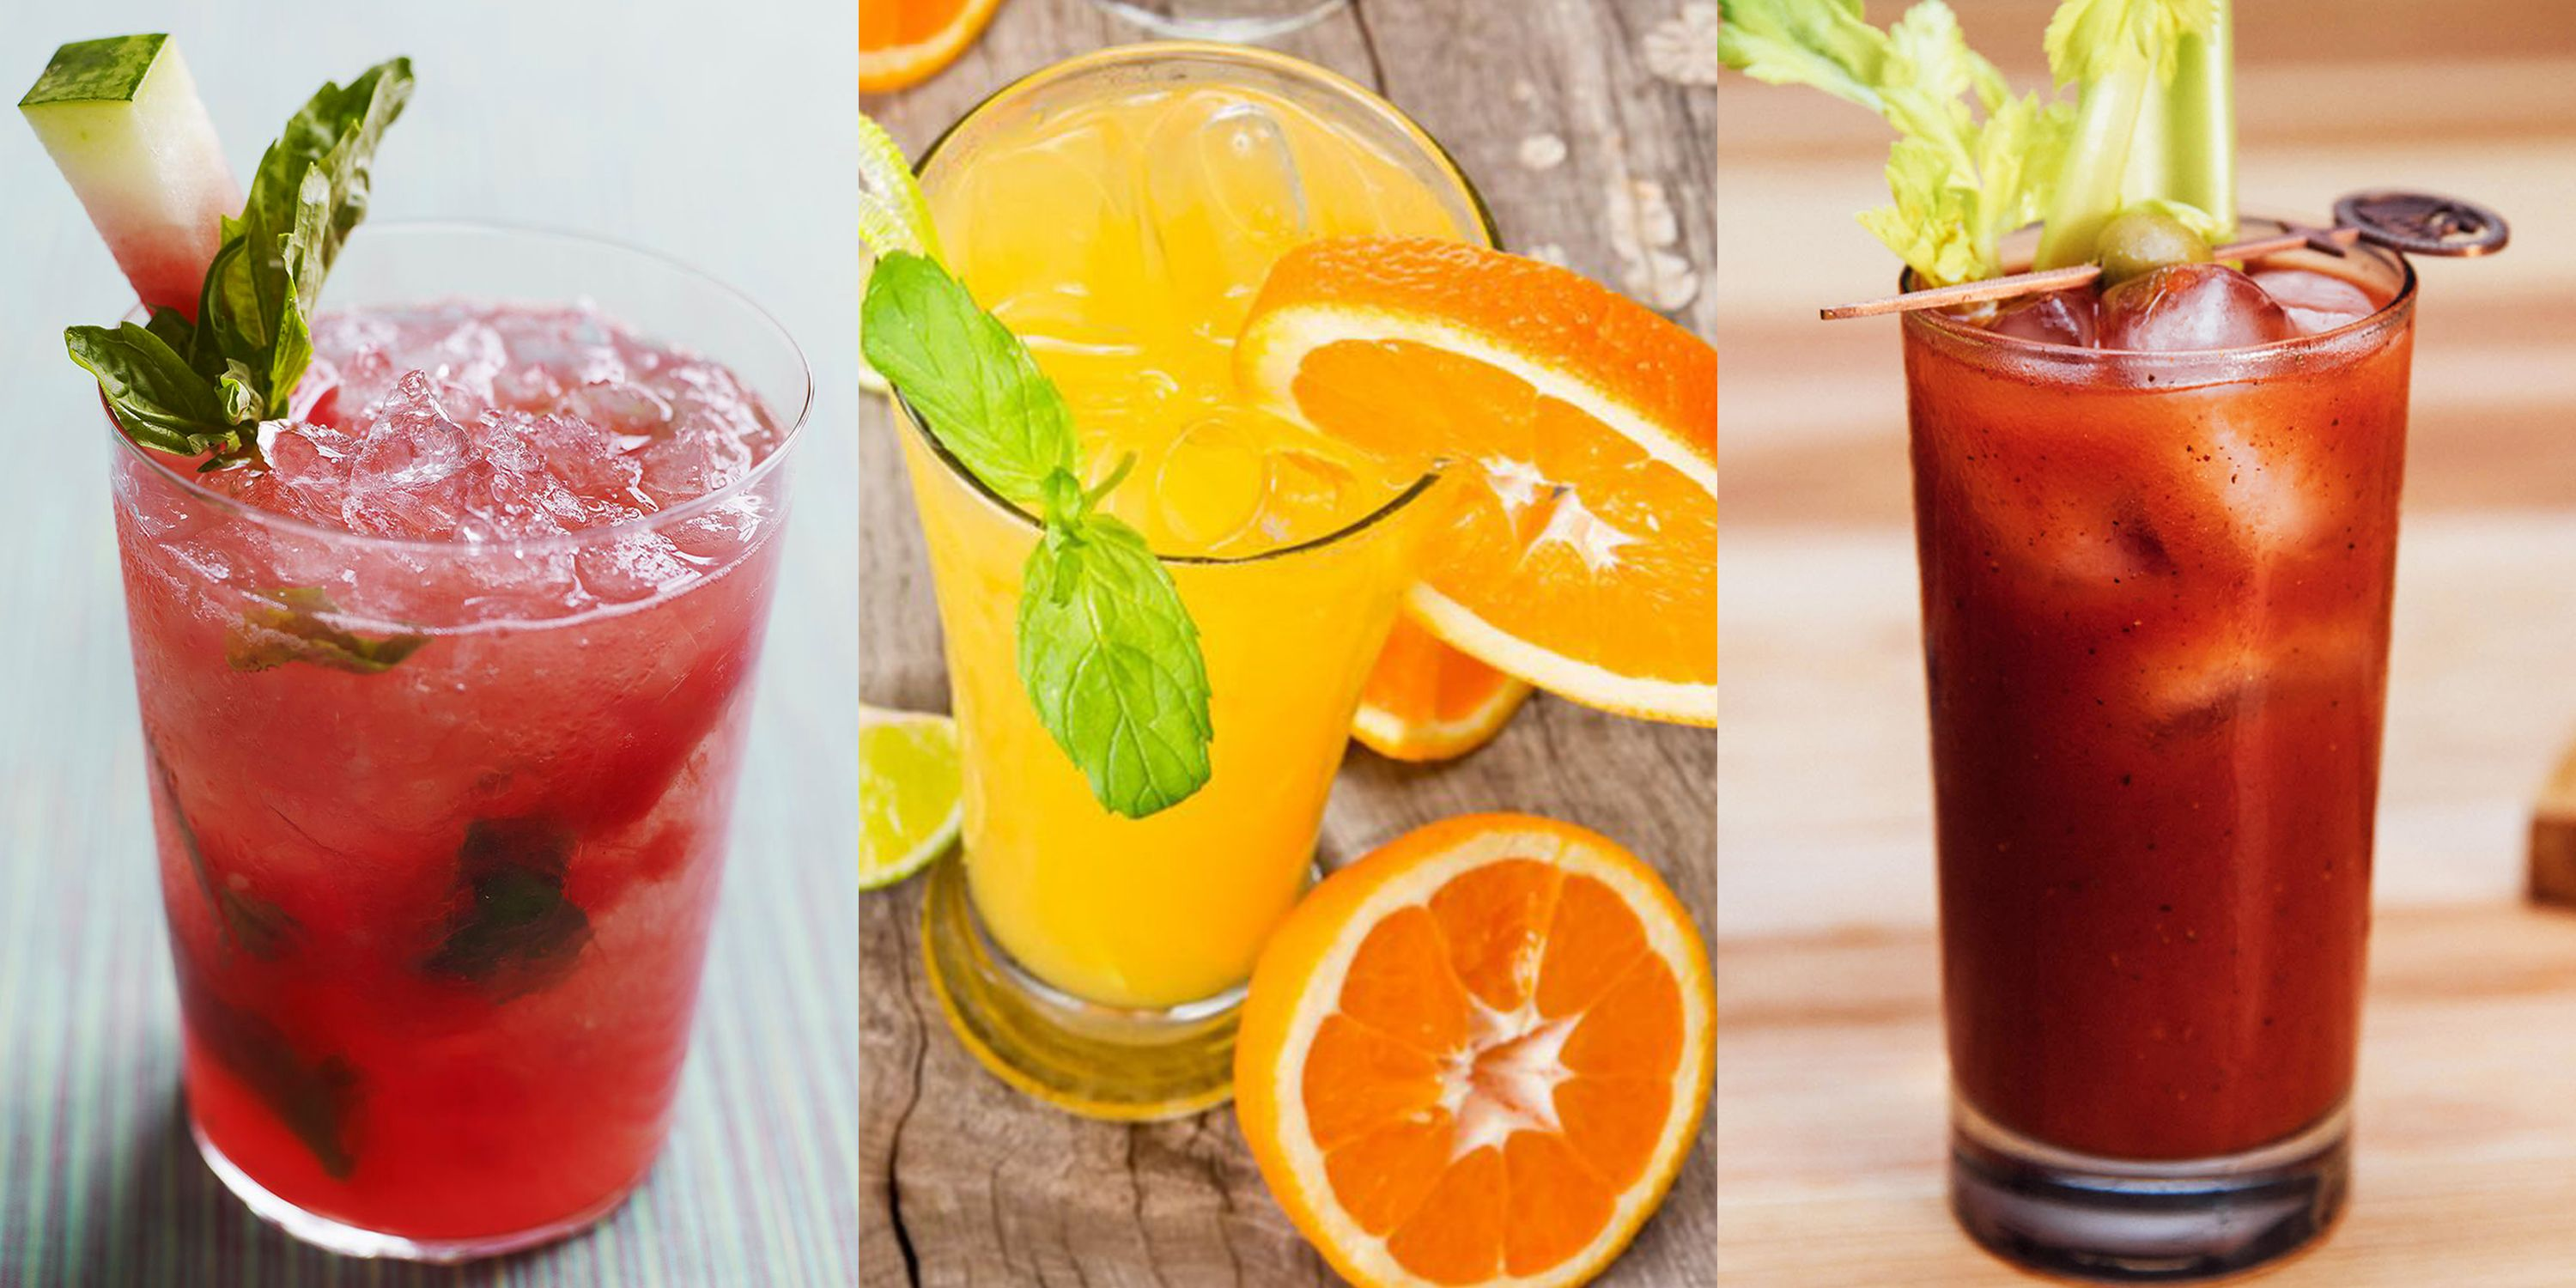 How to make a good mixed drink with vodka